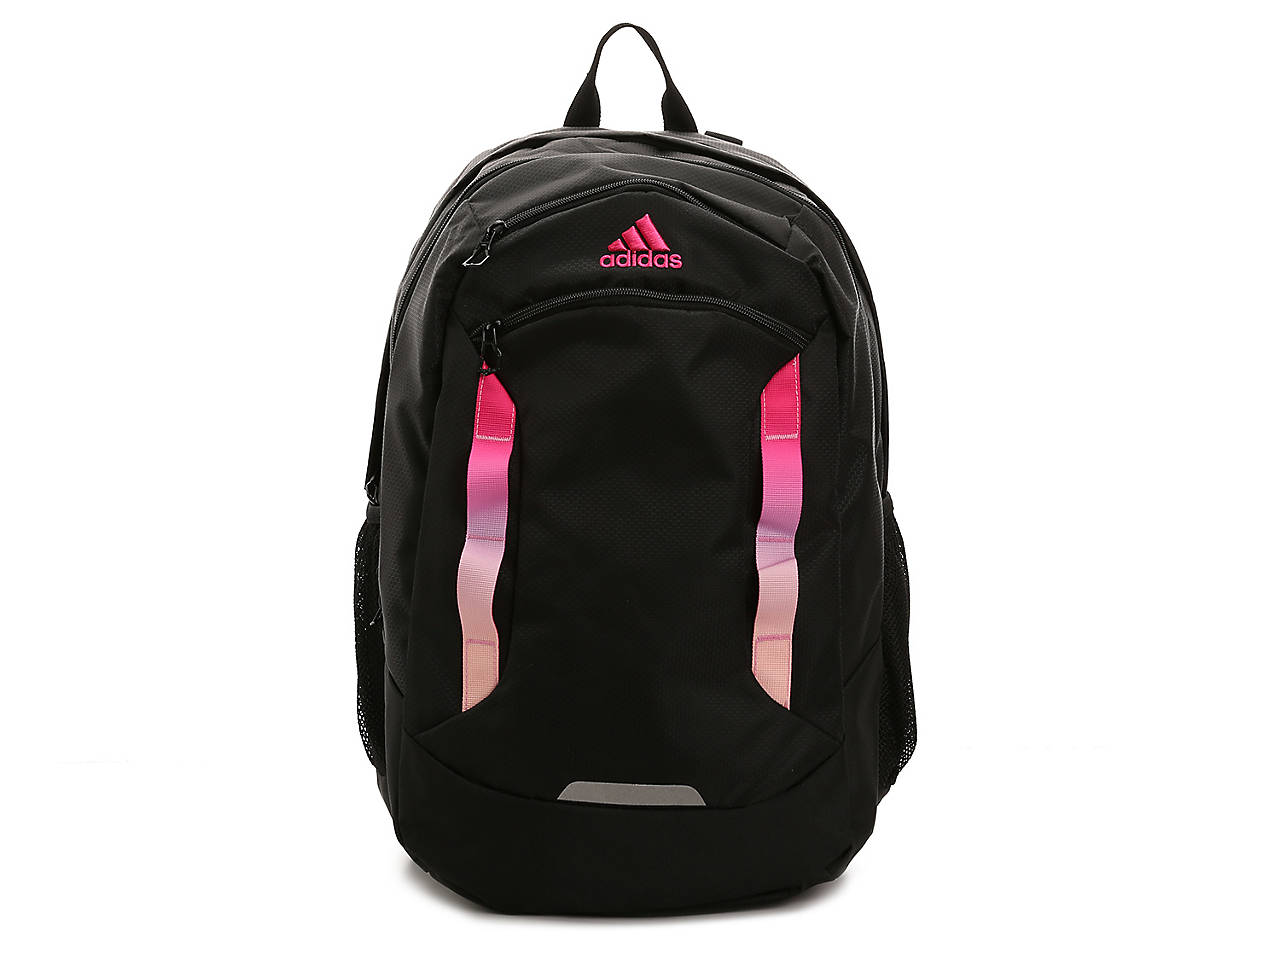 f7697ad785 adidas Excel IV Backpack Women's Handbags & Accessories | DSW